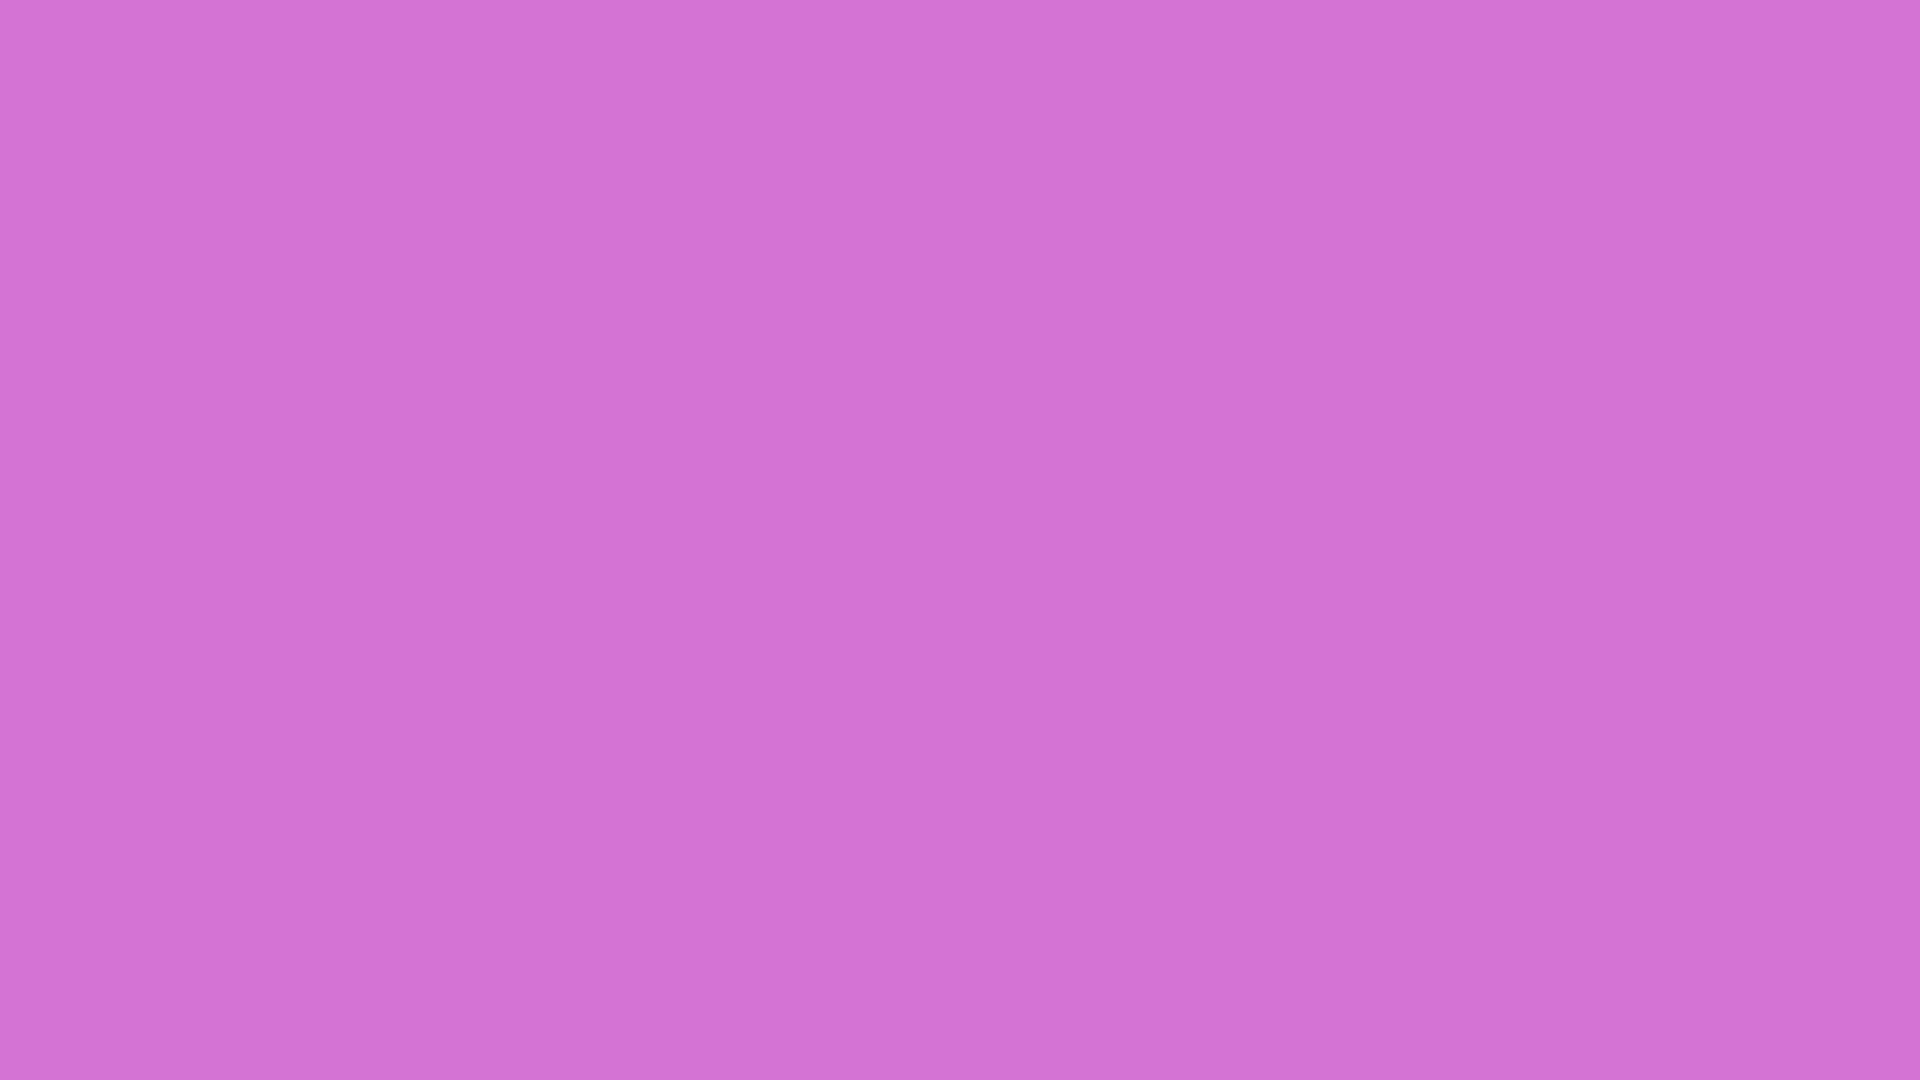 1920x1080 French Mauve Solid Color Background